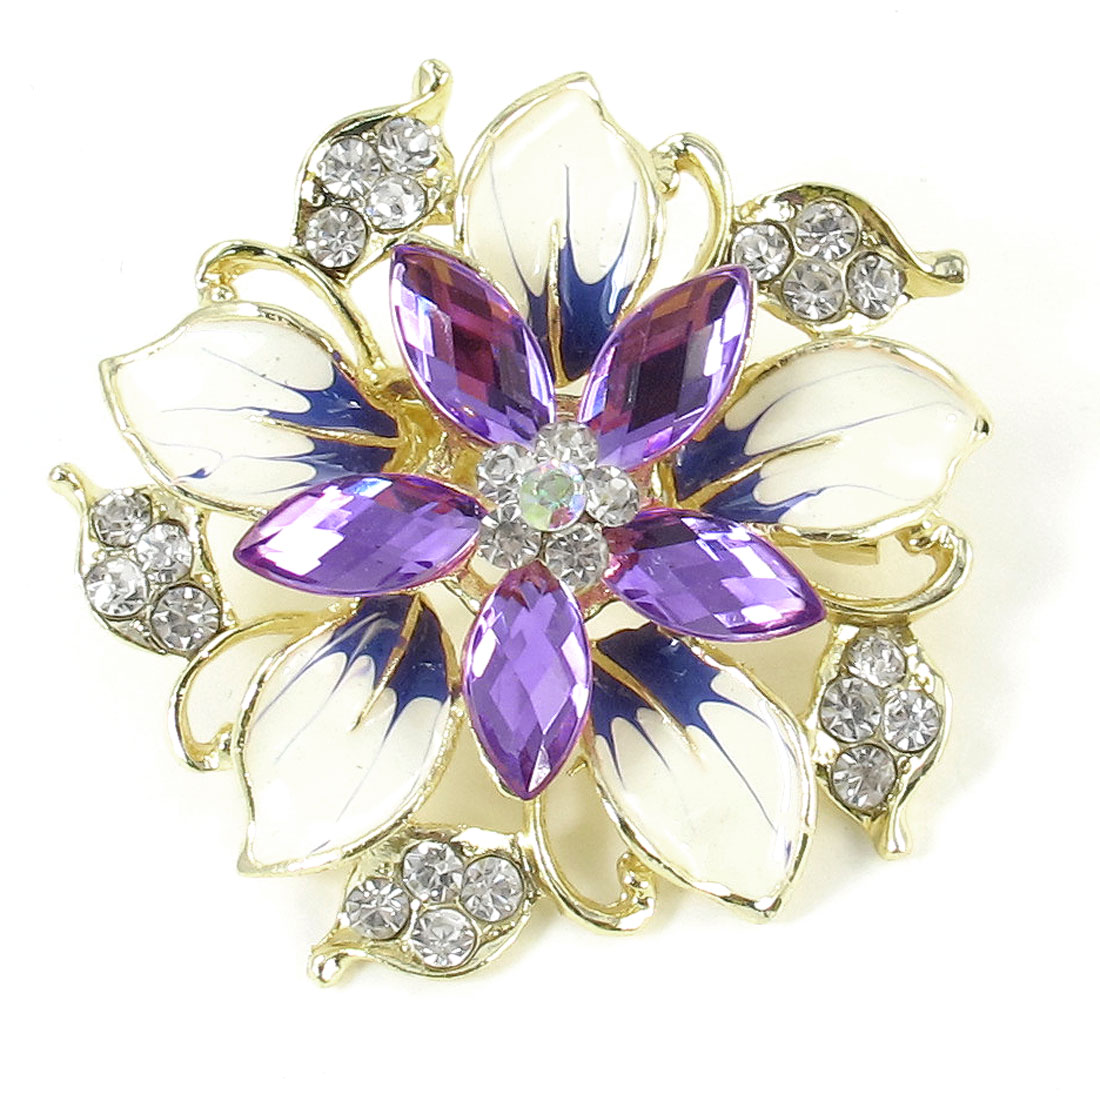 Purple Faceted Beads Decor Floral Design Safety Pin Clip Brooch for Women